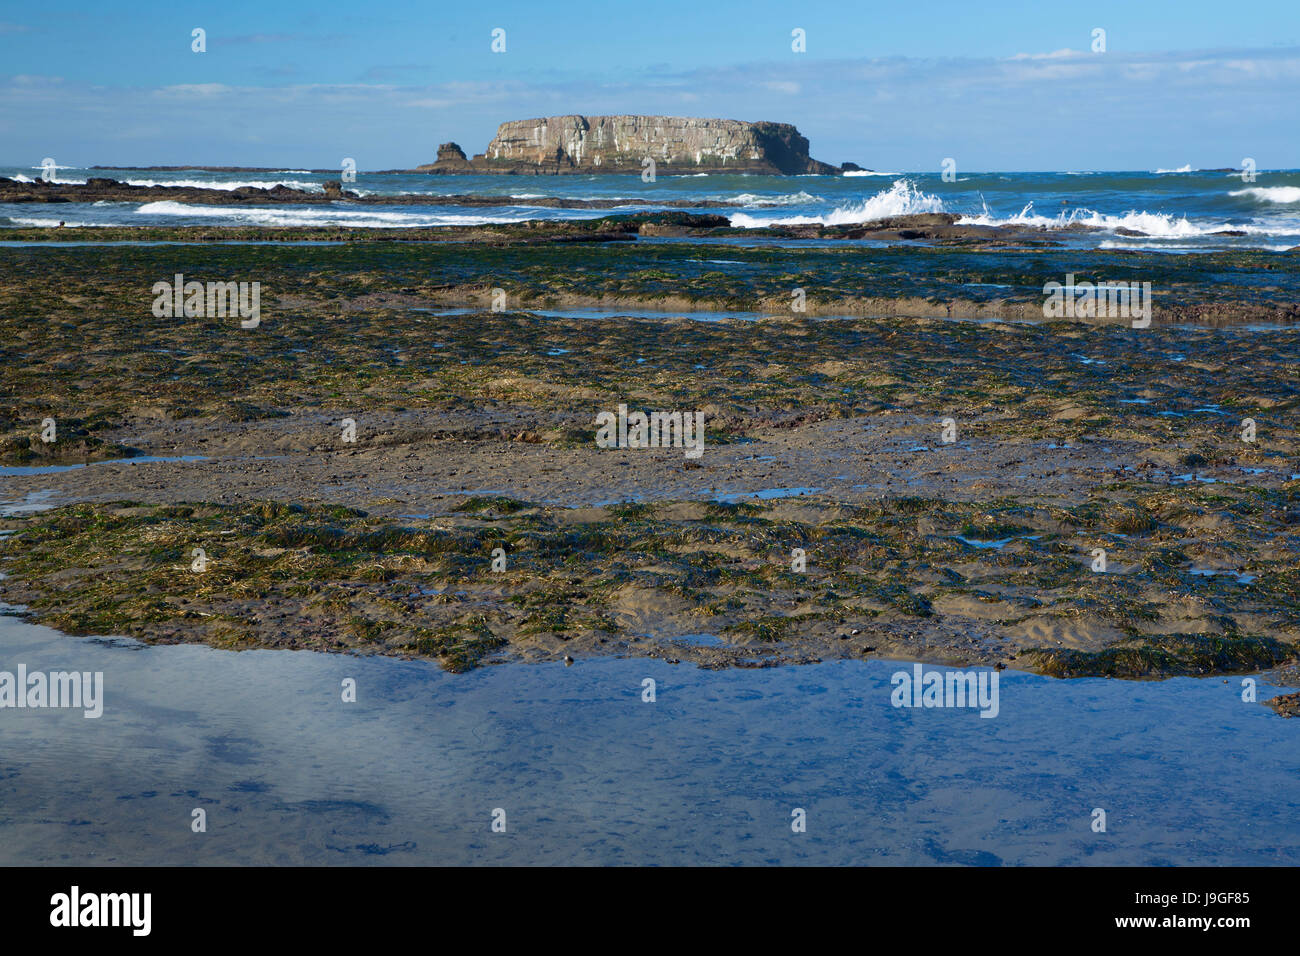 Otter Rock with tidepools, Marine Gardens State Park, Oregon - Stock Image